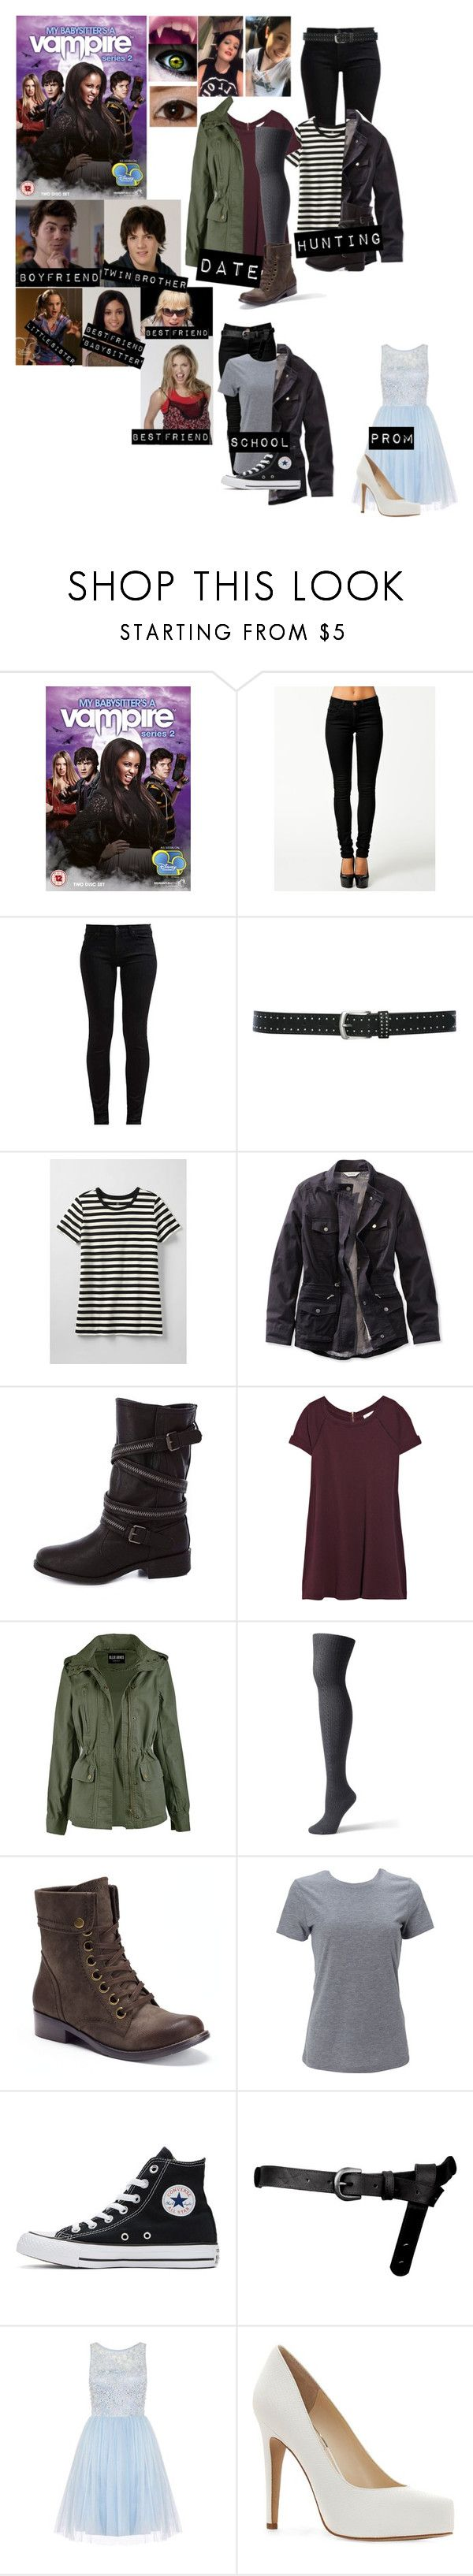 """""""Me in: 'My Babysitter's A Vampire' [re-done]"""" by j-j-fandoms ❤ liked on Polyvore featuring ONLY, 7 For All Mankind, M&Co, Lands' End, L.L.Bean, Charlotte Russe, Vanessa Bruno, 2 Lips Too, Simplex Apparel and Converse"""